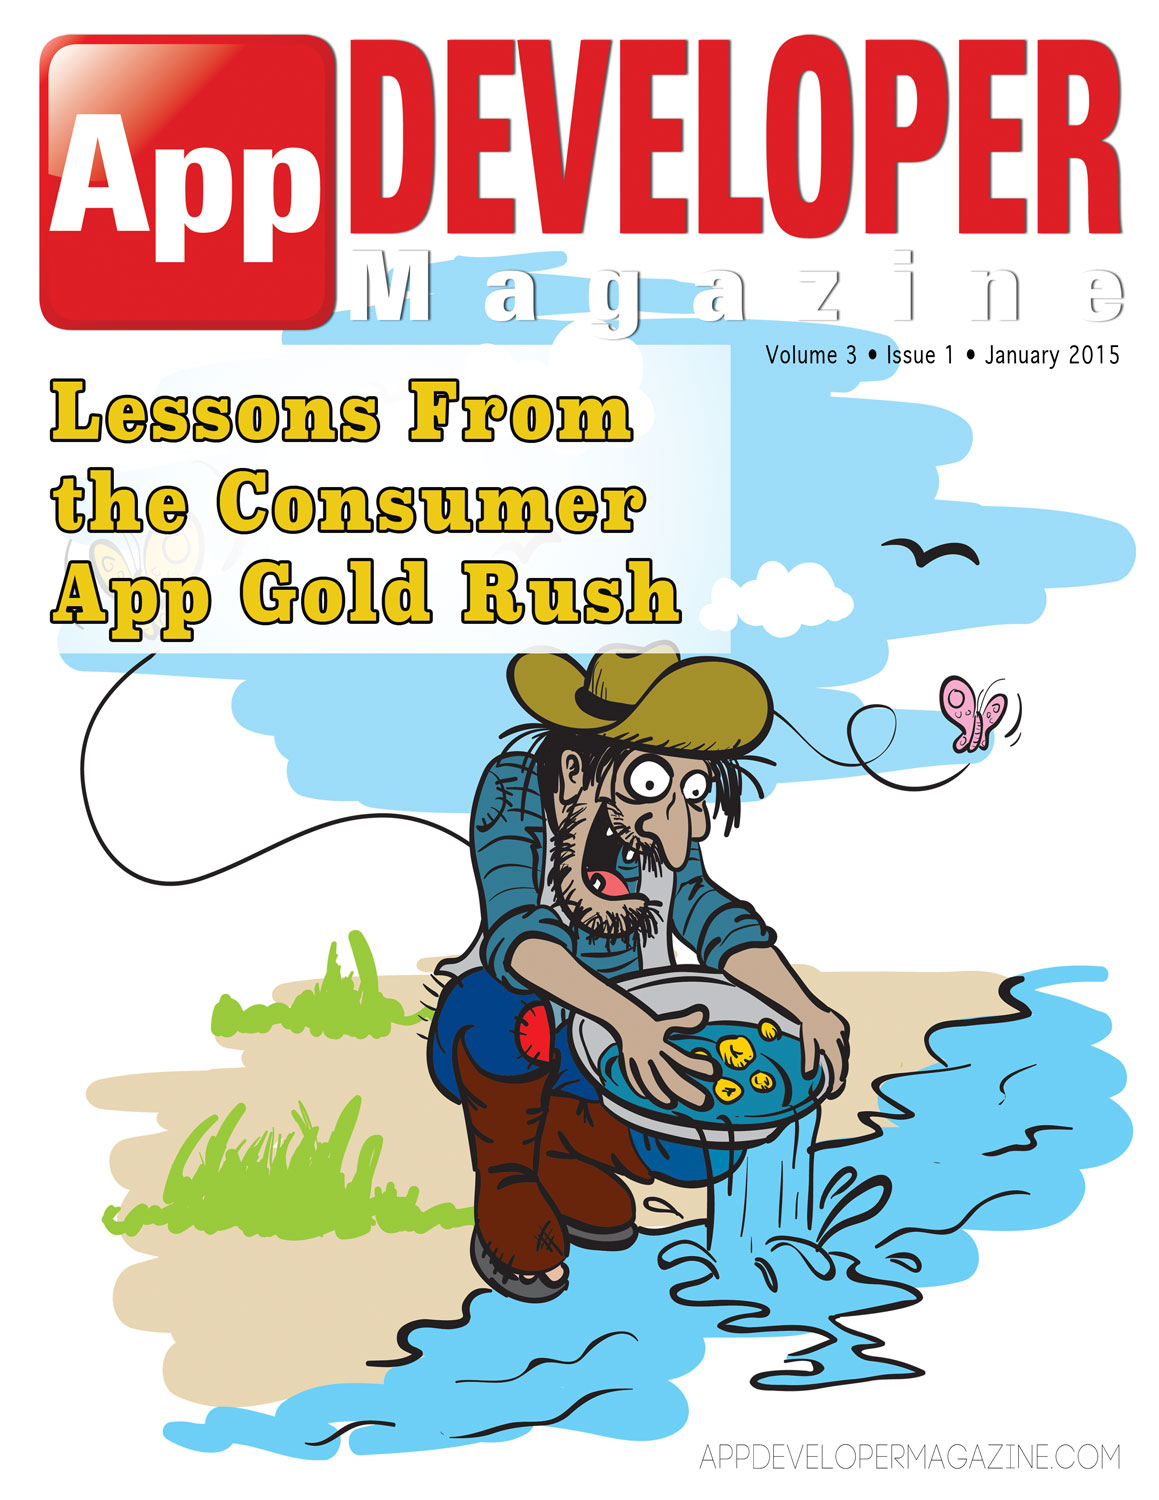 Read App Developer Magazine January 2015 issue